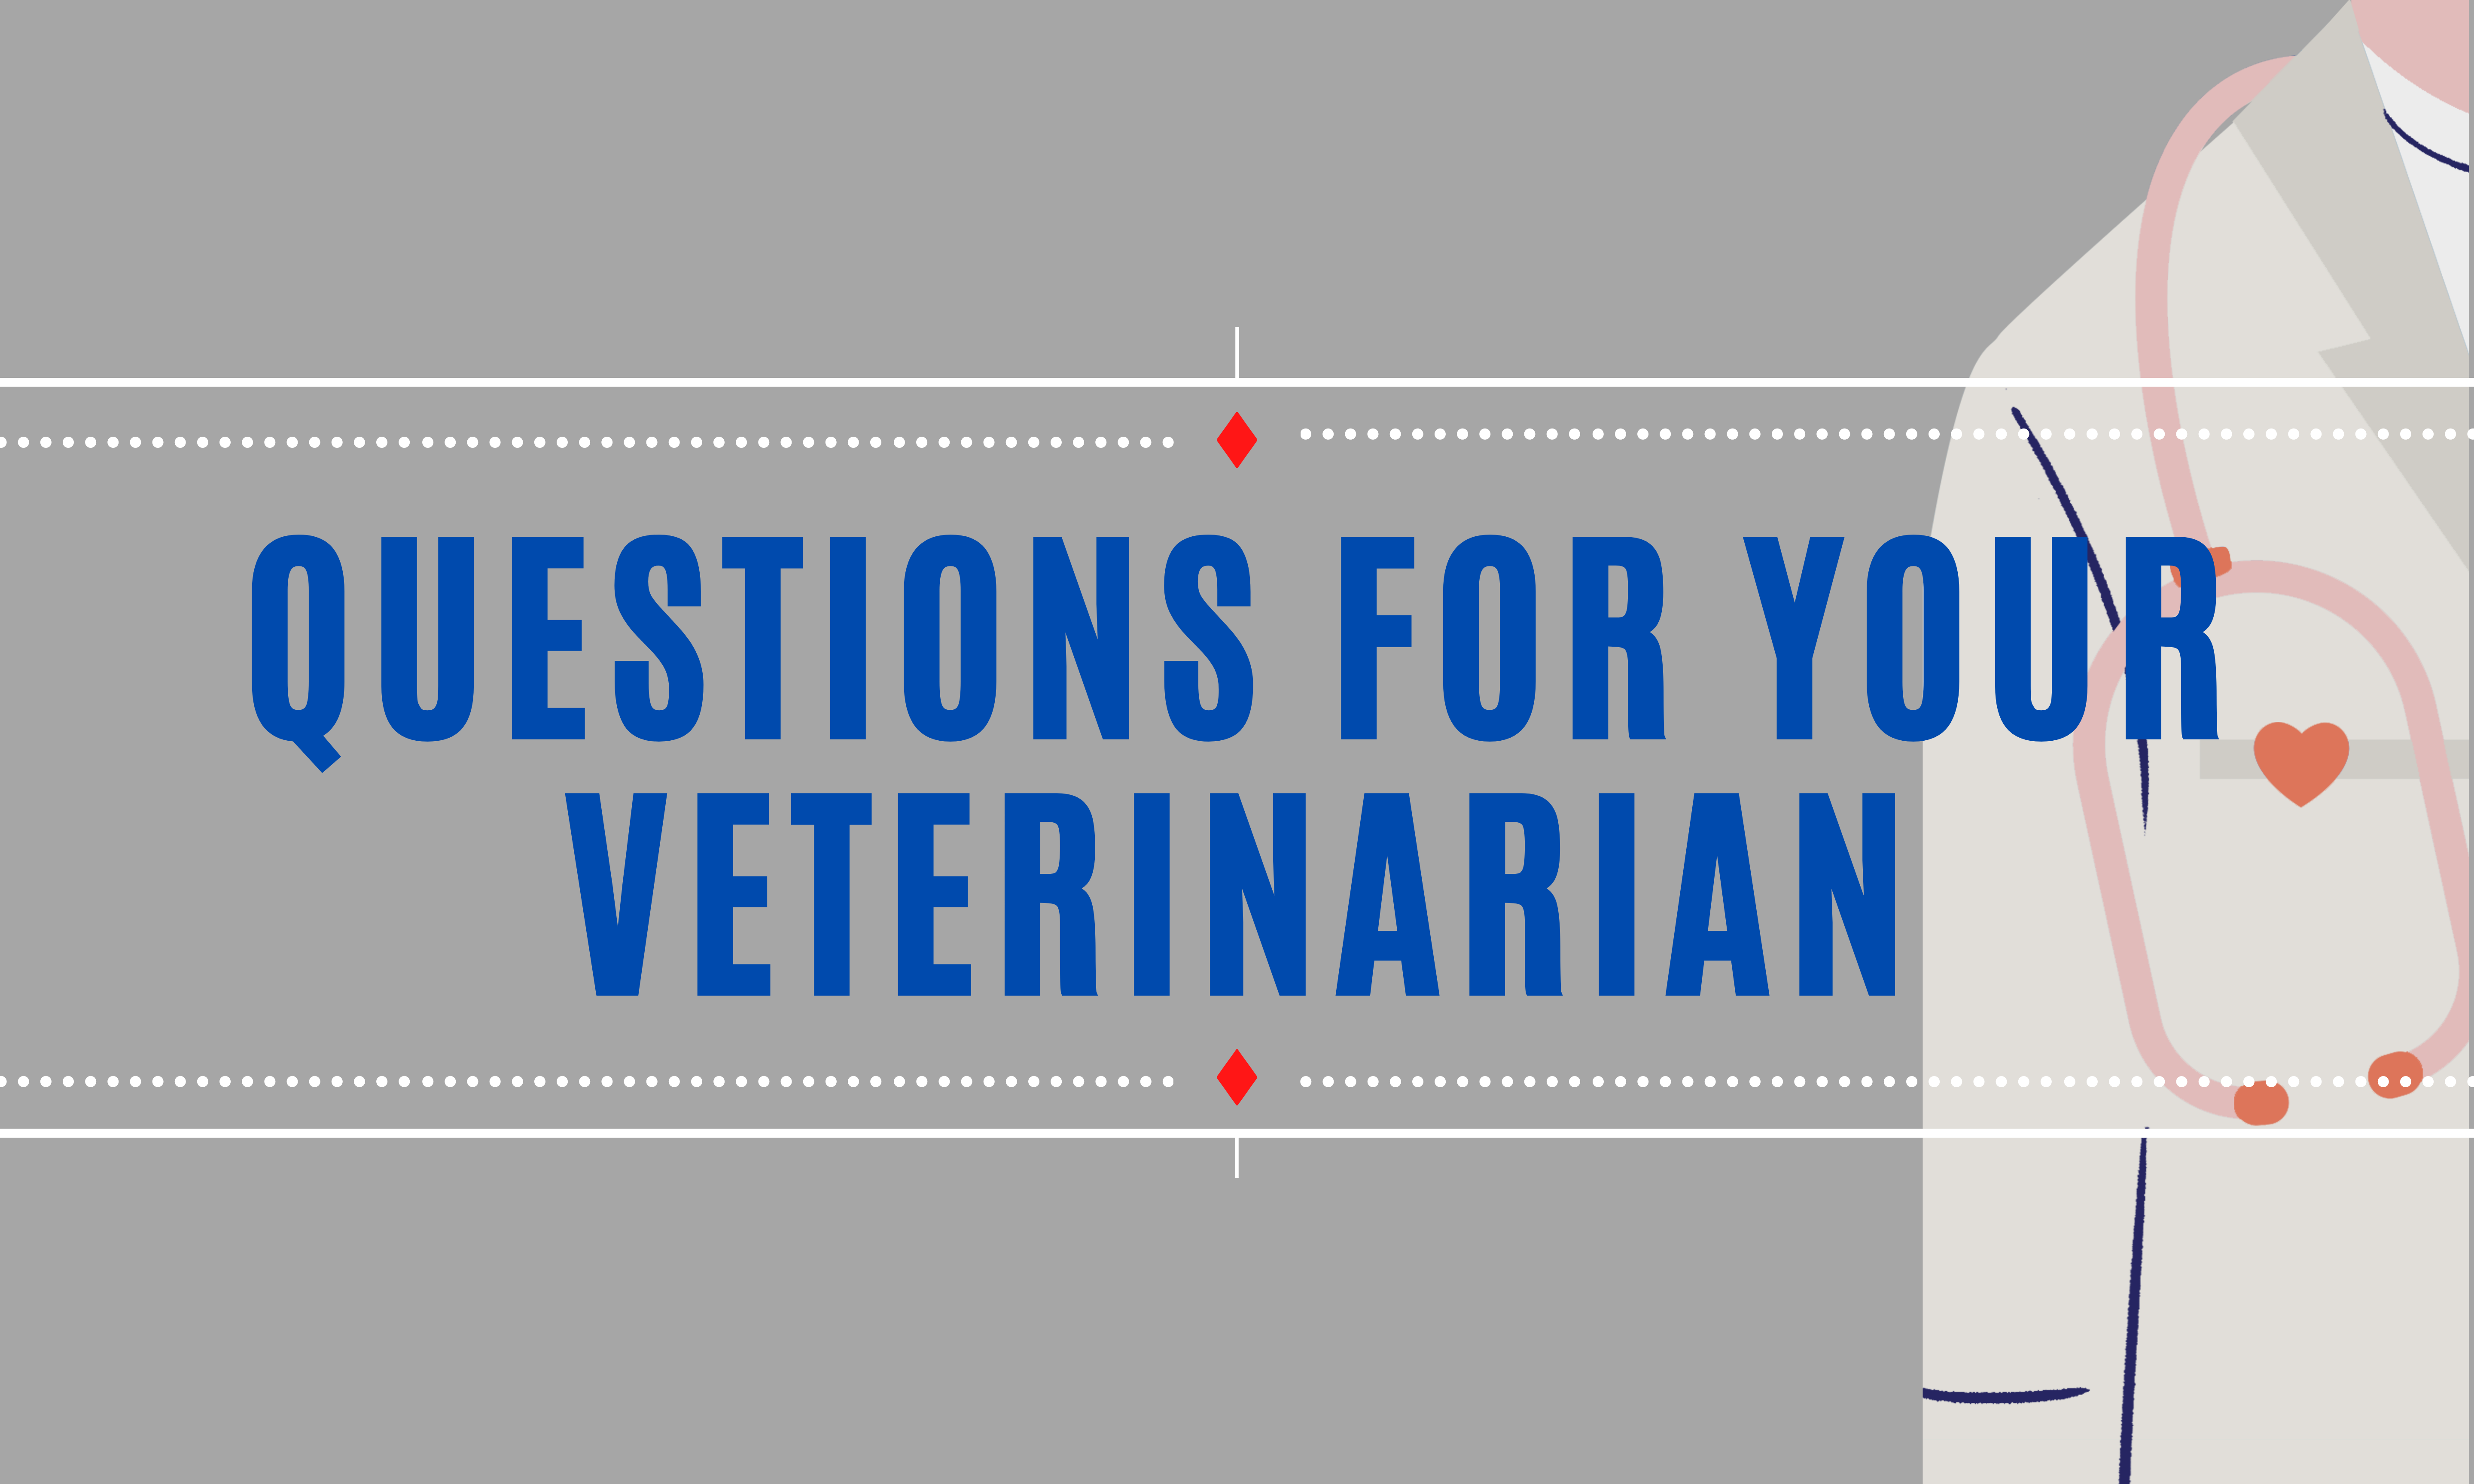 Questions for the Veterinarian